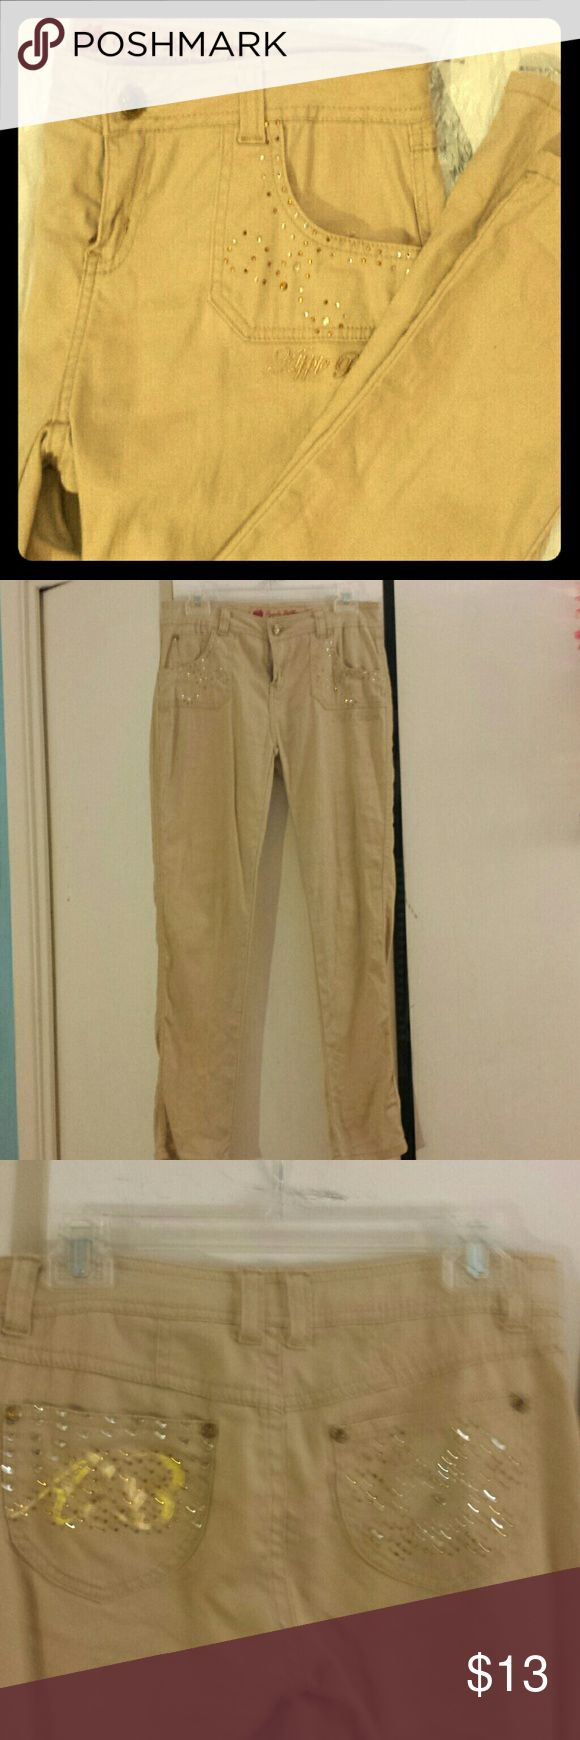 GIRLS' Apple Bottoms Jeans Tan Jeweled Pants Tan Apple Bottoms skinny cut pants with rhinestone decorations along the front and back pockets. Super chic and stylish for older girls/preteens. Size 16/XL could even fit a ladies XS or S. Please let me know if you have any questions or want more pics! Apple Bottoms Bottoms Jeans